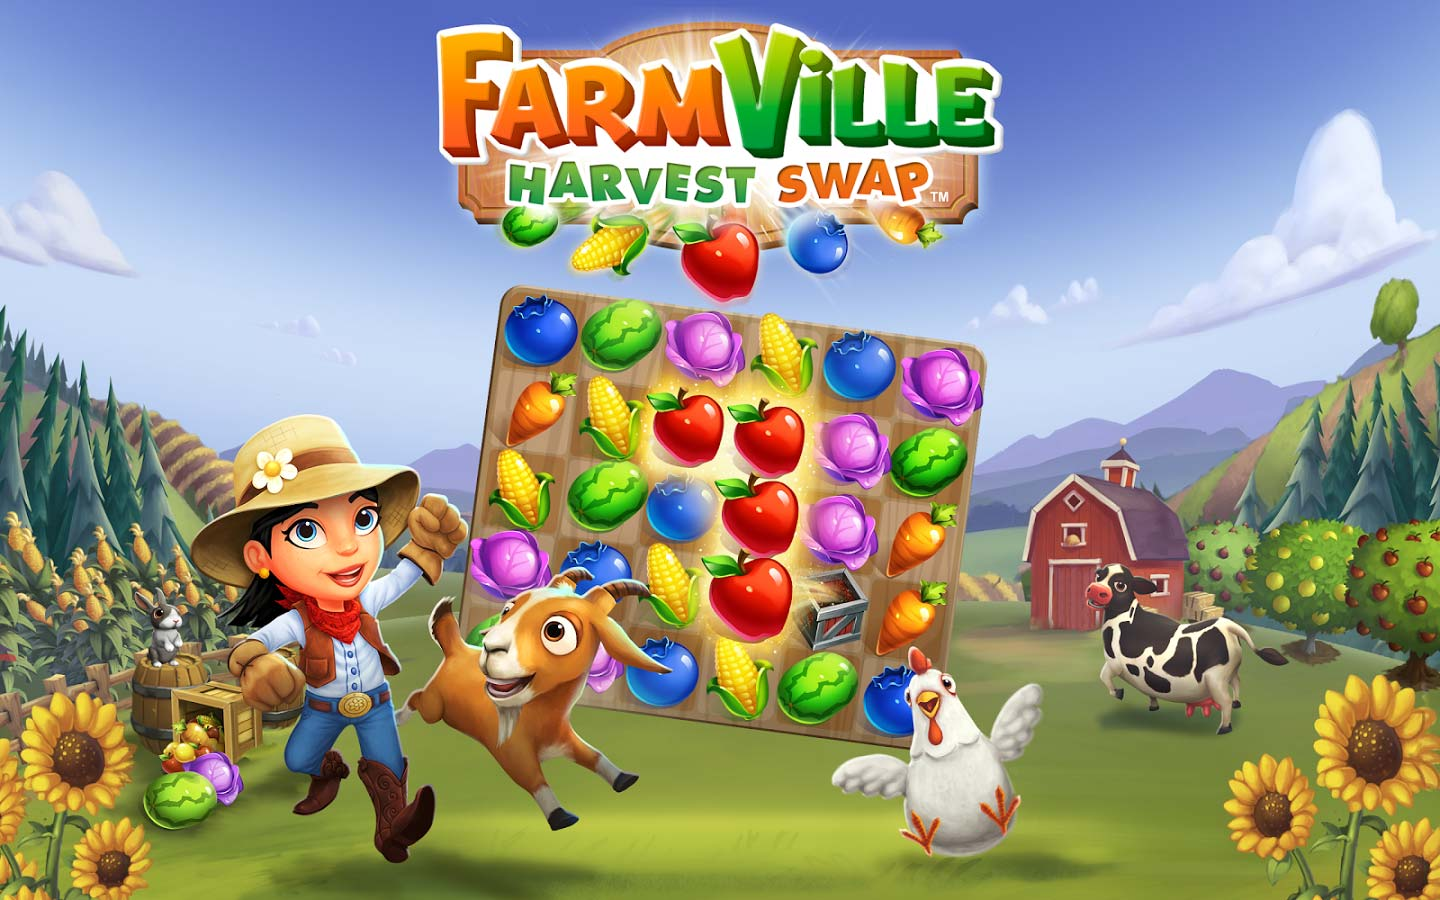 farmville-harvest-swap-candy-crush-style-game.jpg